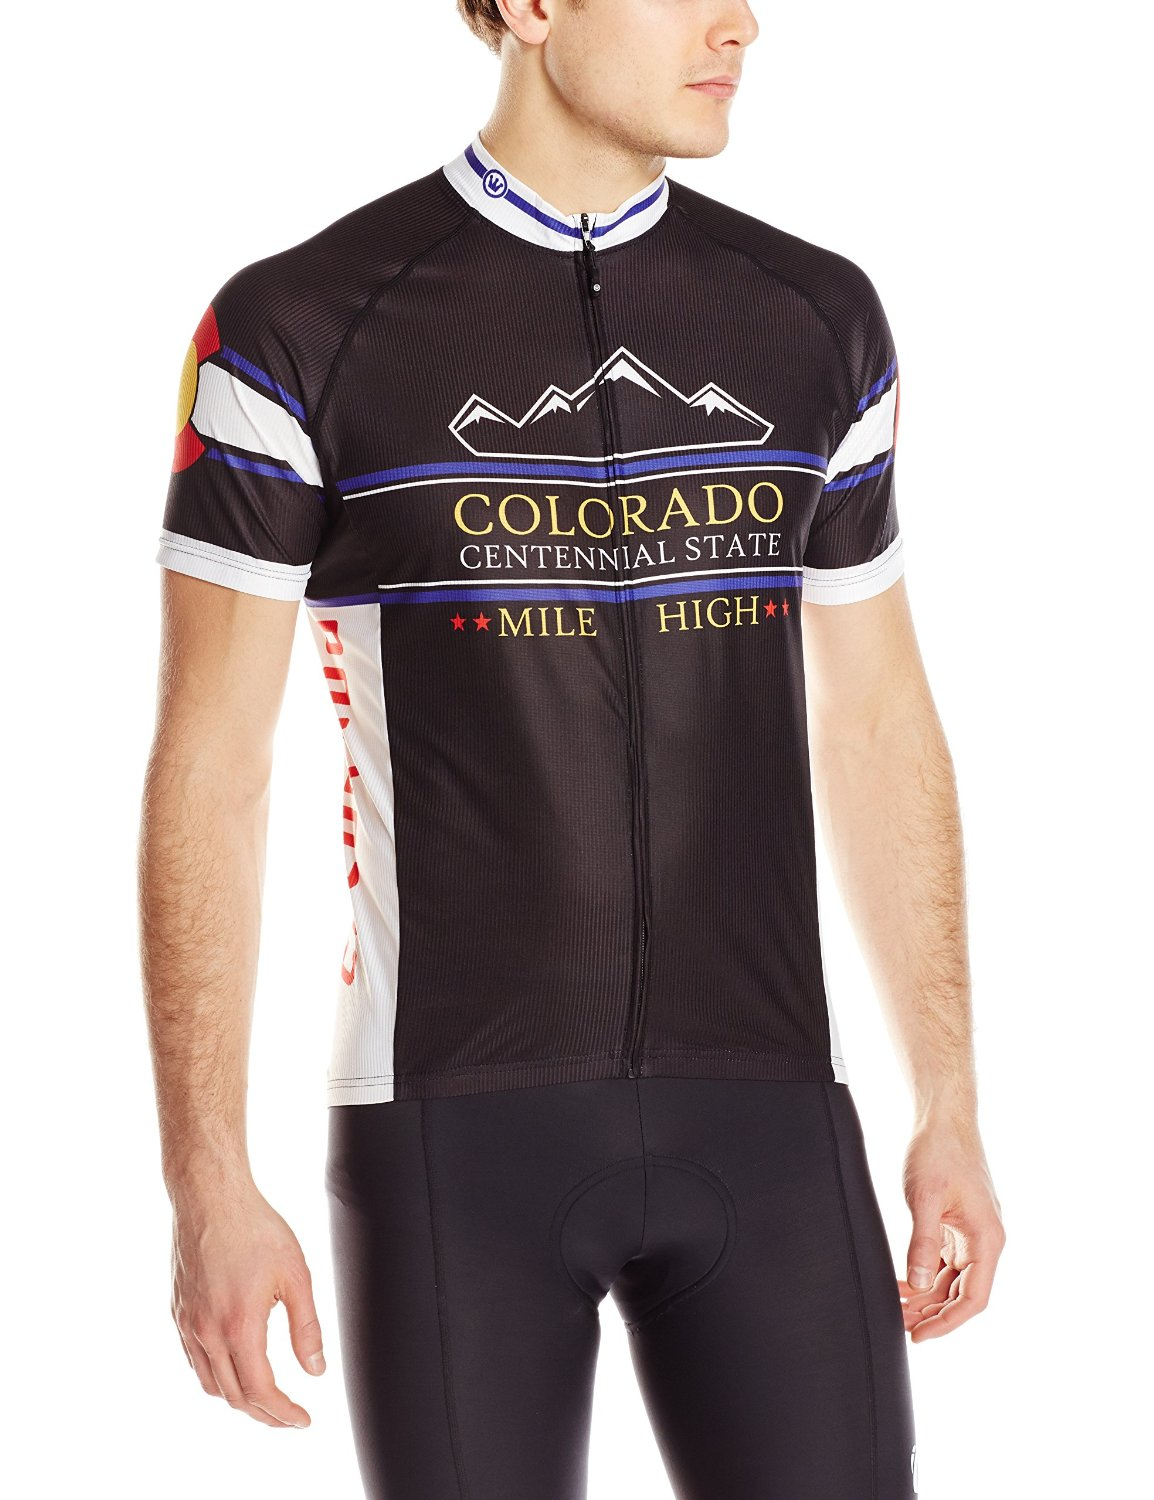 Buy Canari Mens Colorado Jersey in Cheap Price on Alibaba.com 9b20a0085